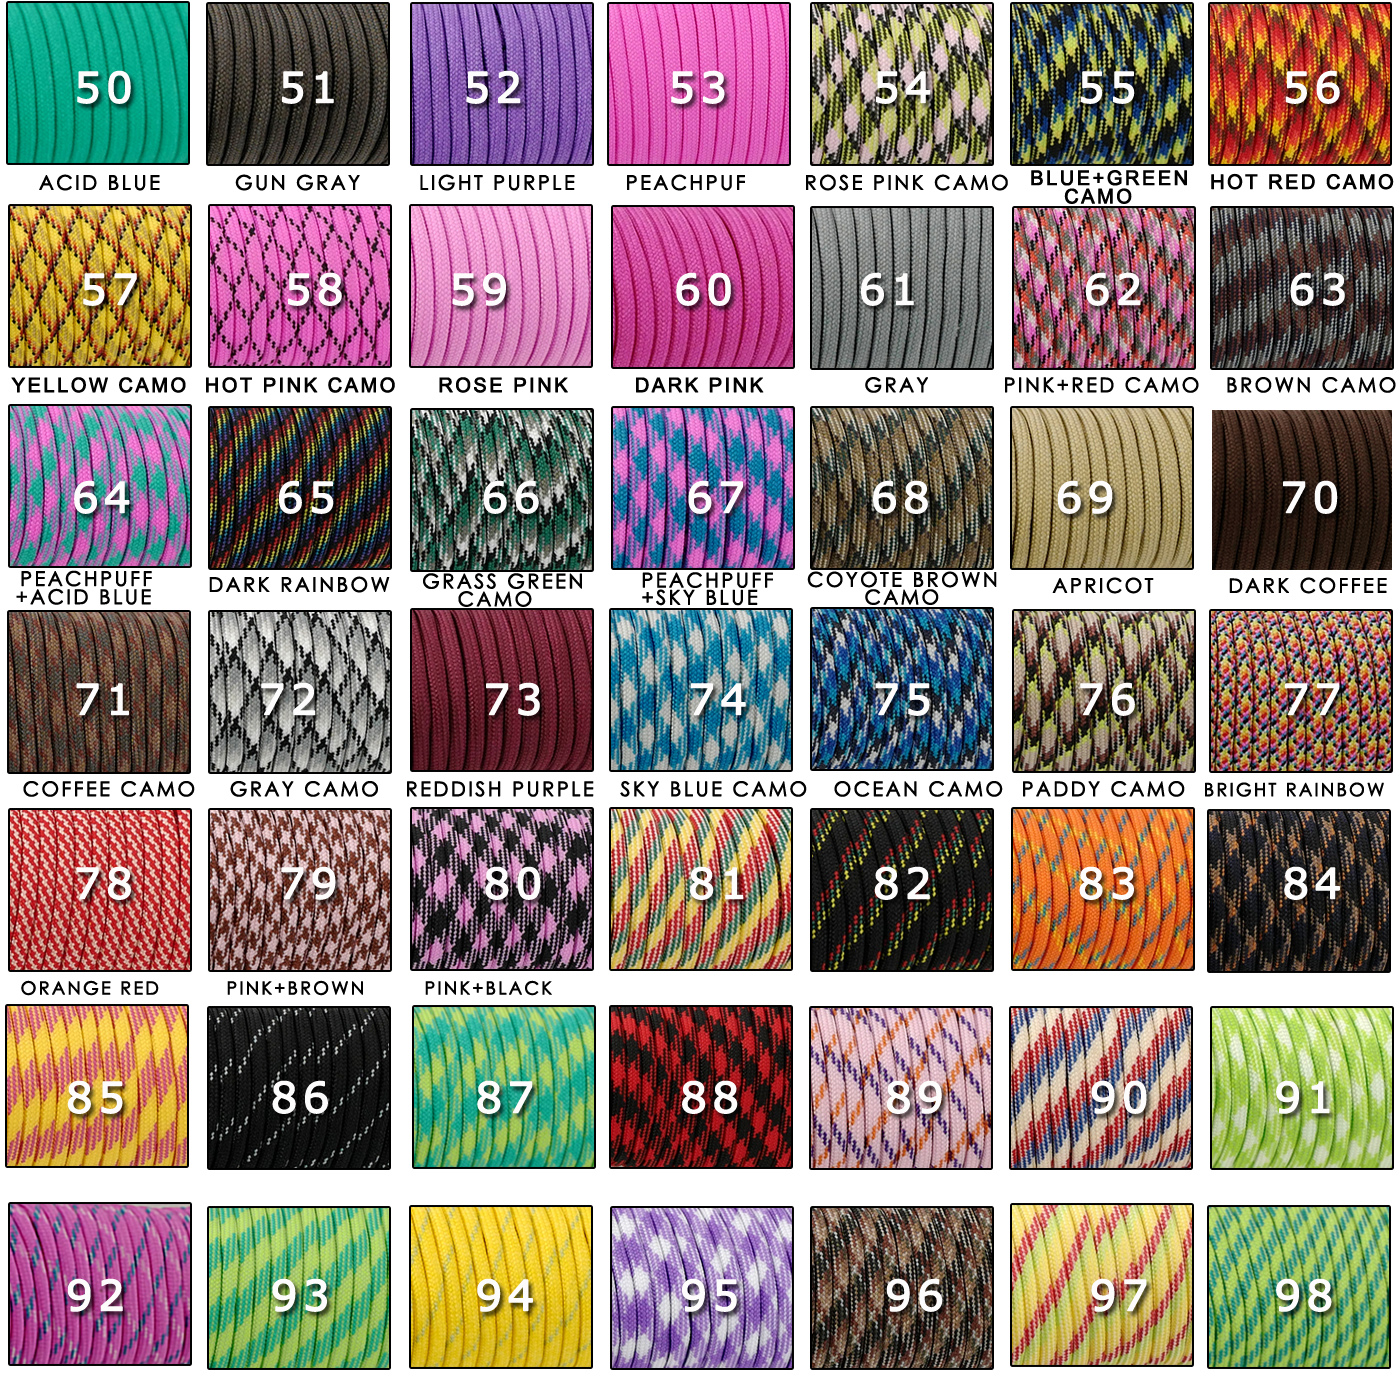 YOUGLE 550 Paracord Parachute Cord Lanyard Tent Rope Guyline Mil Spec Type III 7 Strand 50FT 100FT For Hiking Camping 259 Colors 3